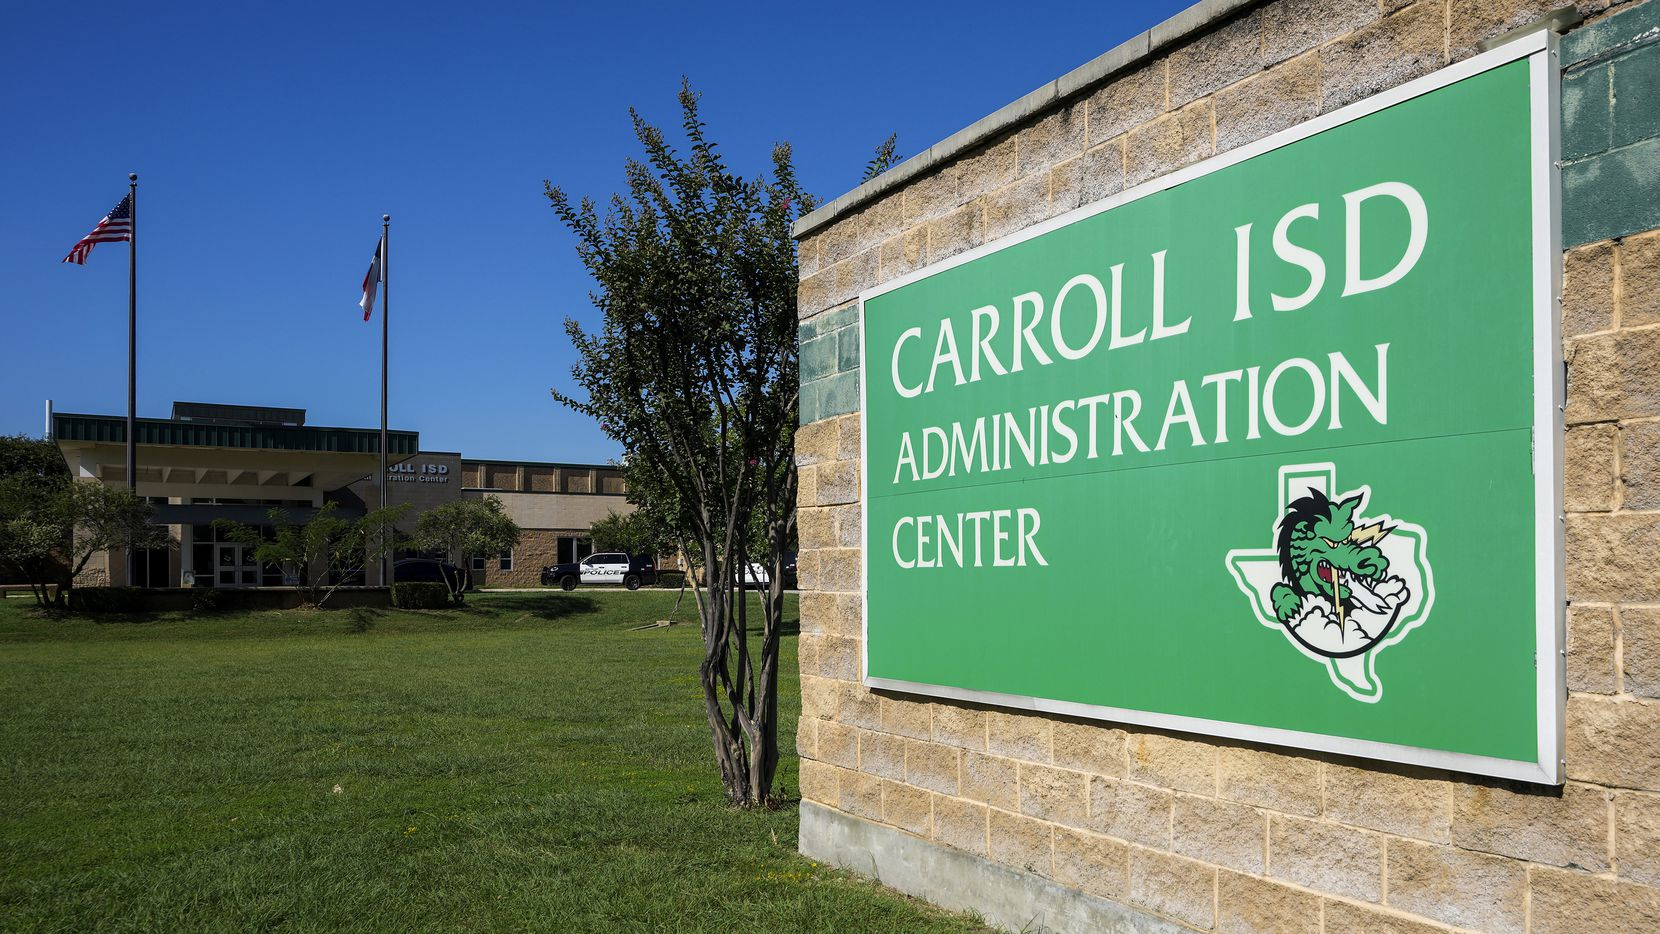 Two Carroll ISD school board candidates will meet in a town hall Oct. 12. (Smiley N. Pool/The Dallas Morning News)